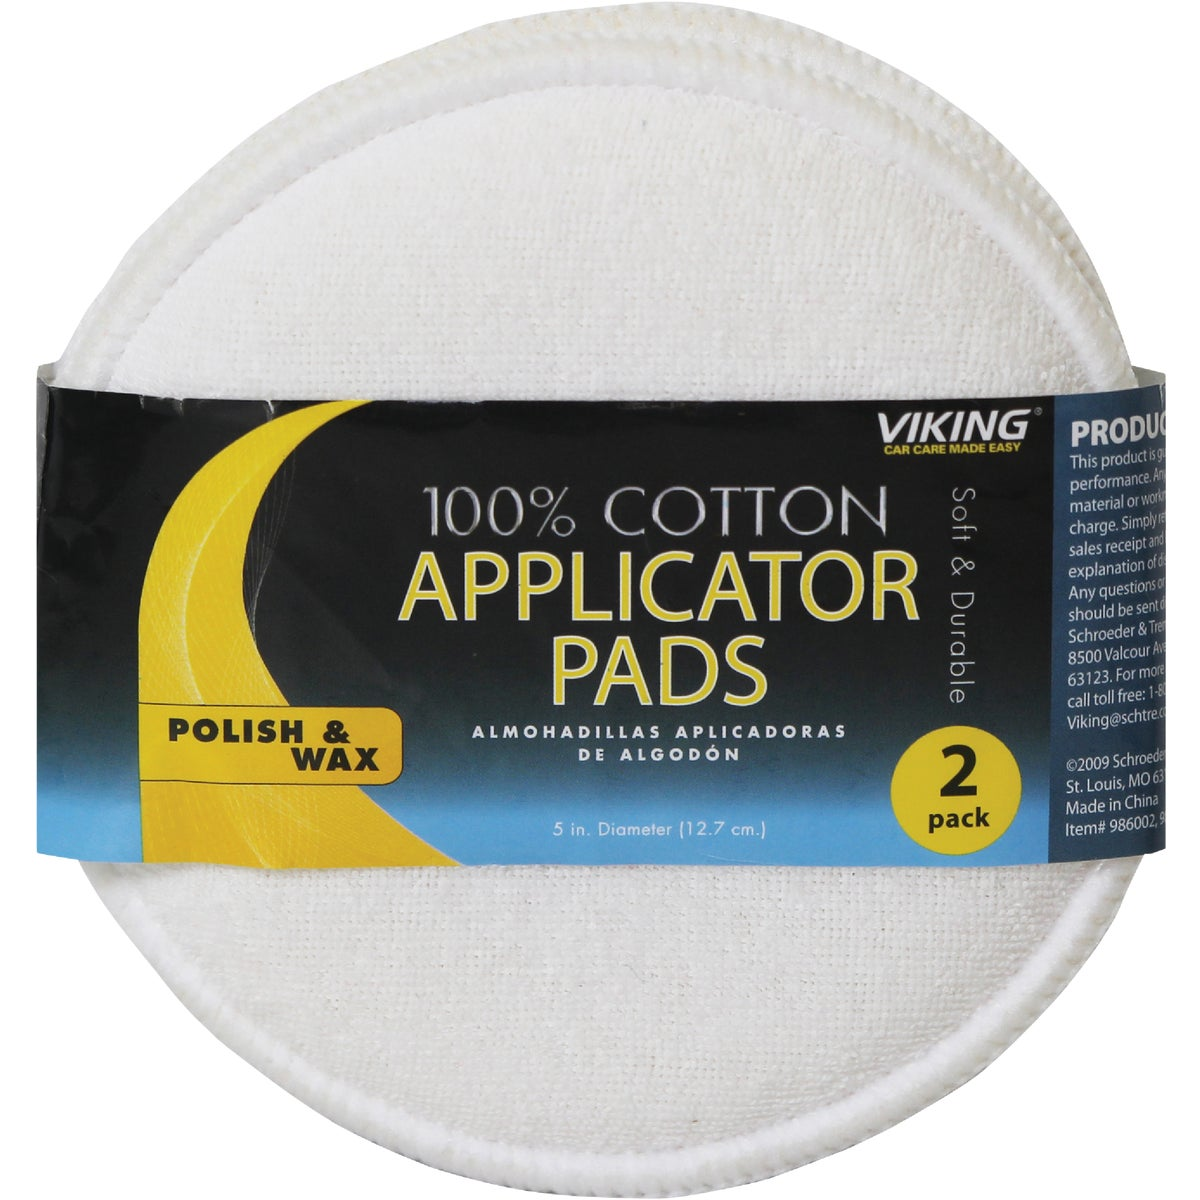 2PK WAX APPLICATOR